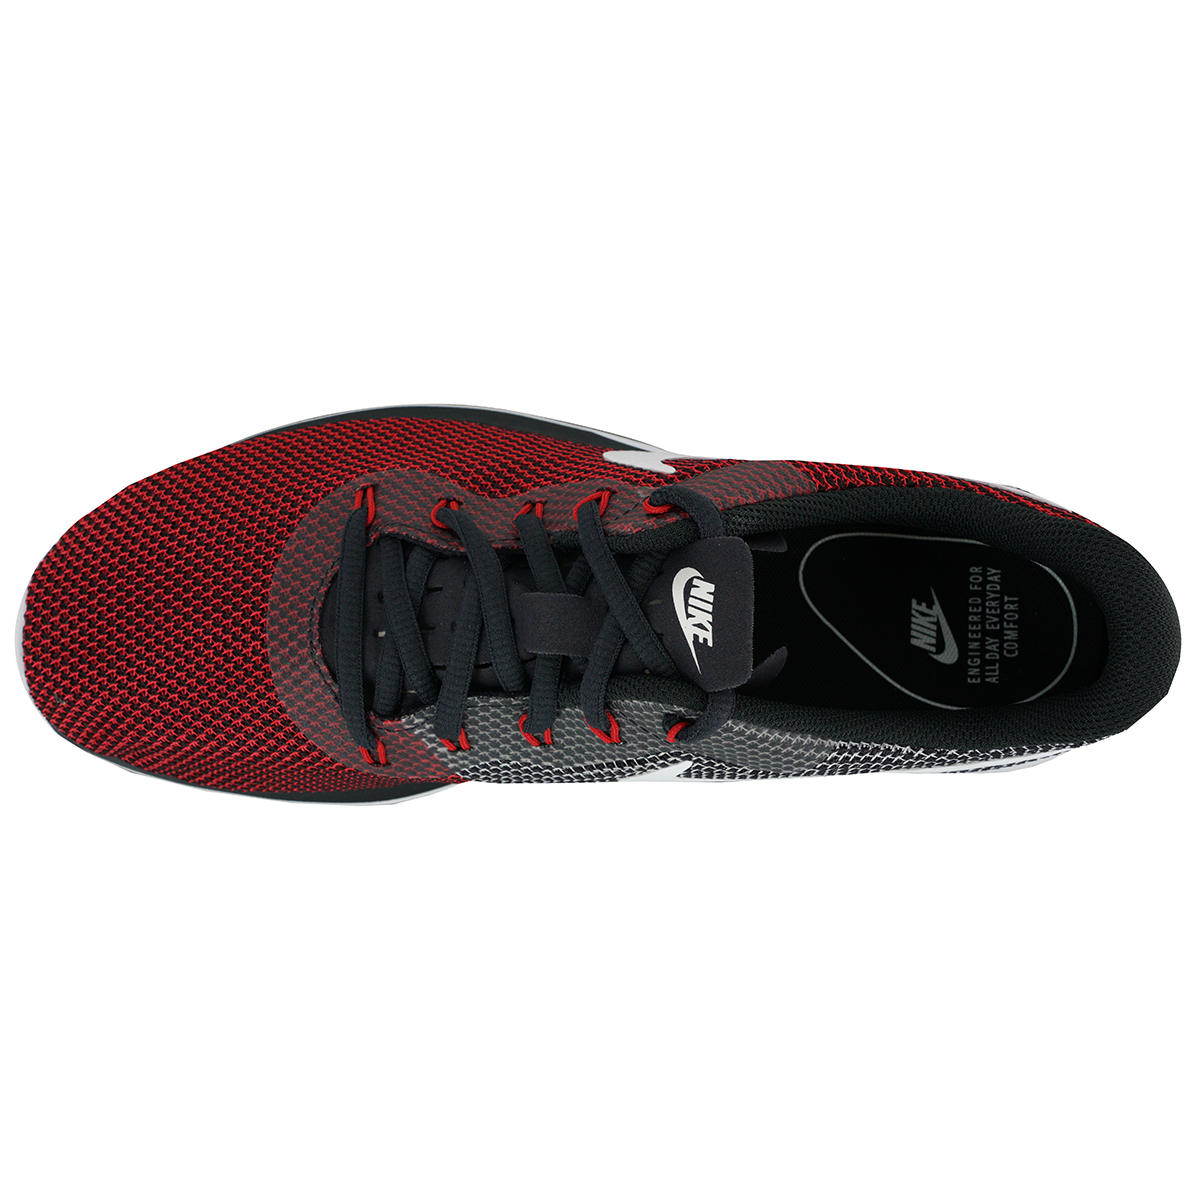 Nike-Men-039-s-Tanjun-Racer-Running-Shoes thumbnail 12